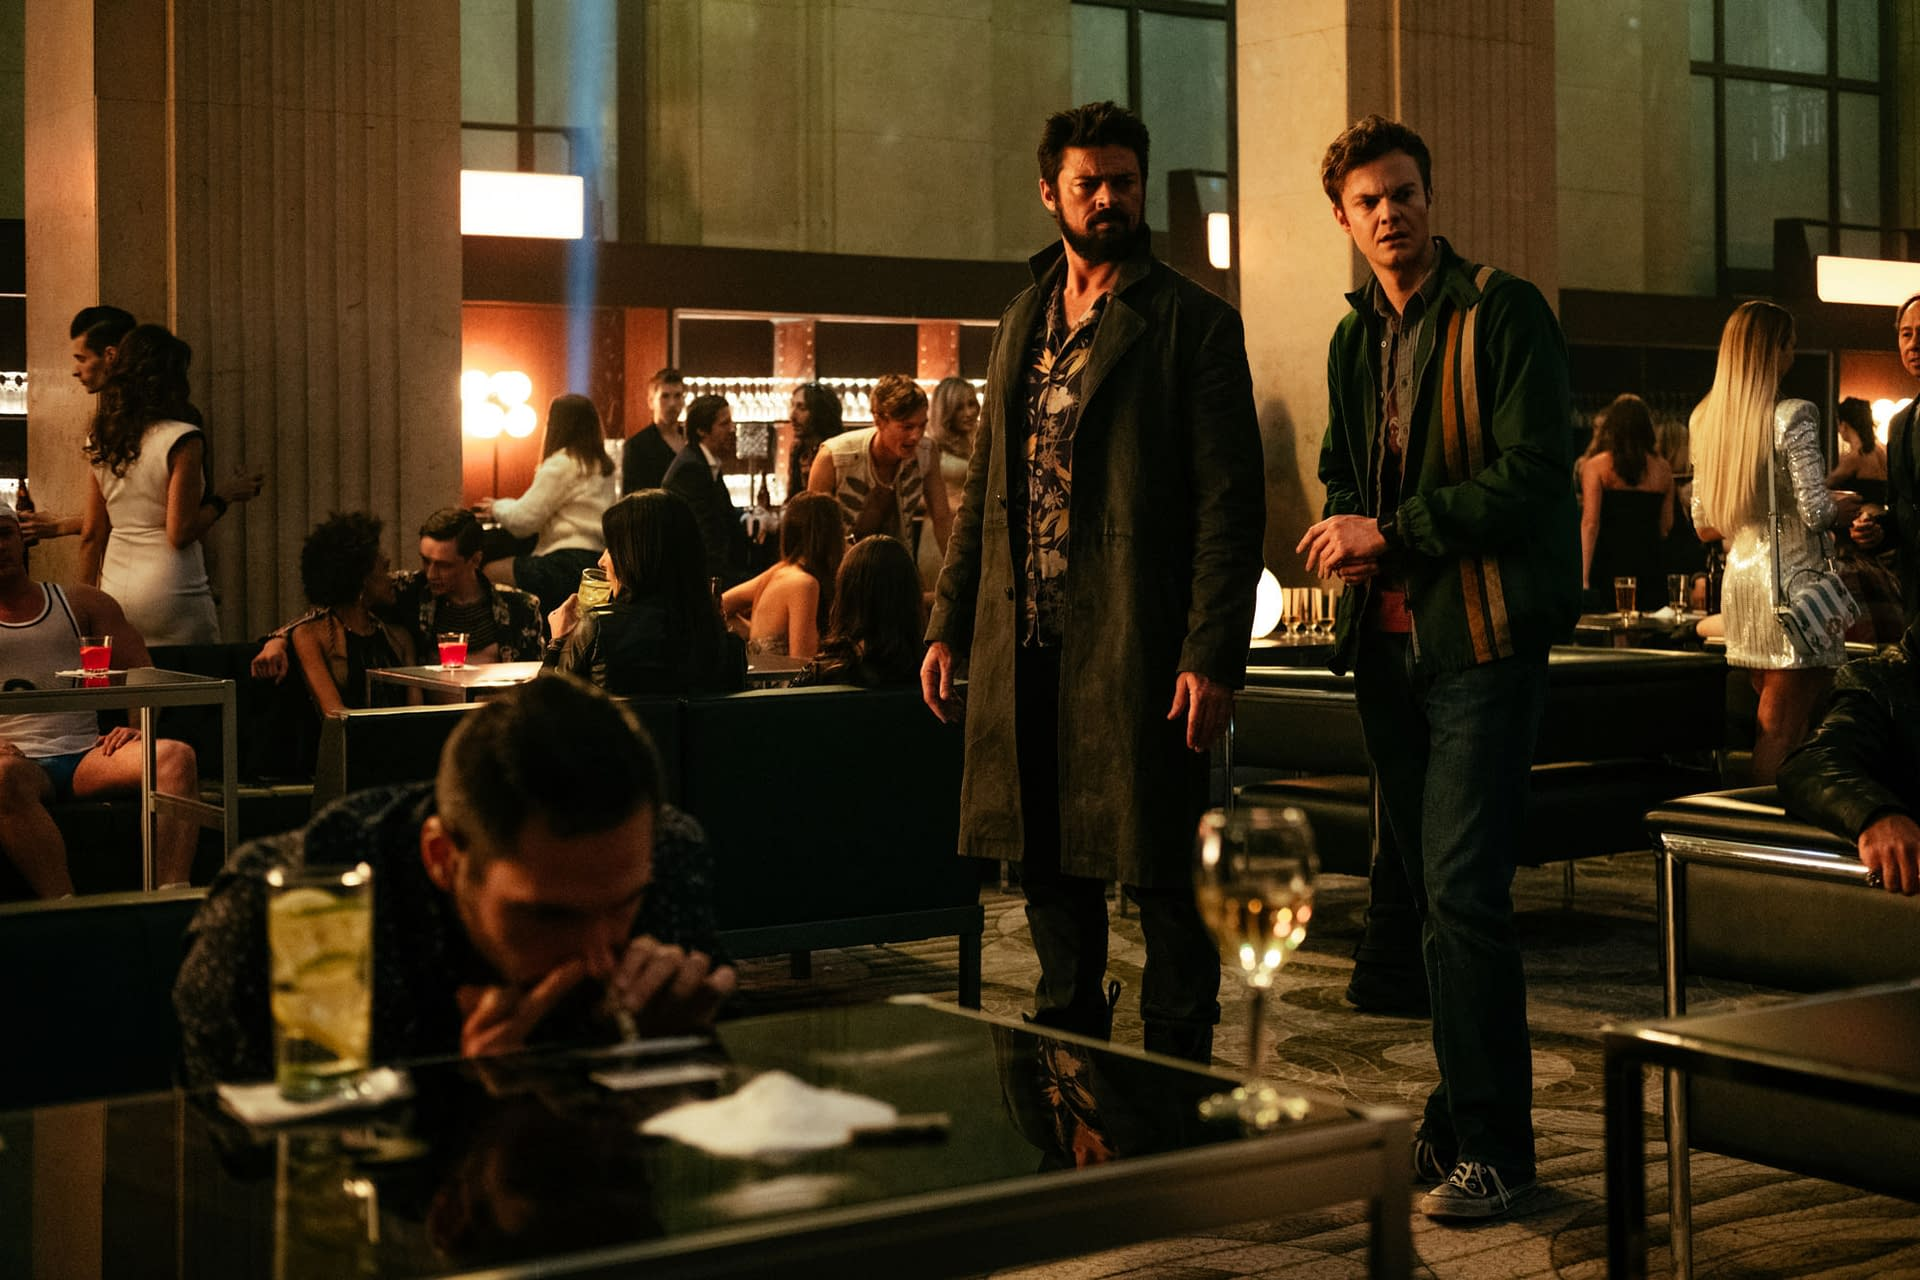 """The Boys"" Season 2: Karl Urban, Jack Quaid & Tomer Capon Offer Well-Hydrated, One-Finger Salute [IMAGE]"